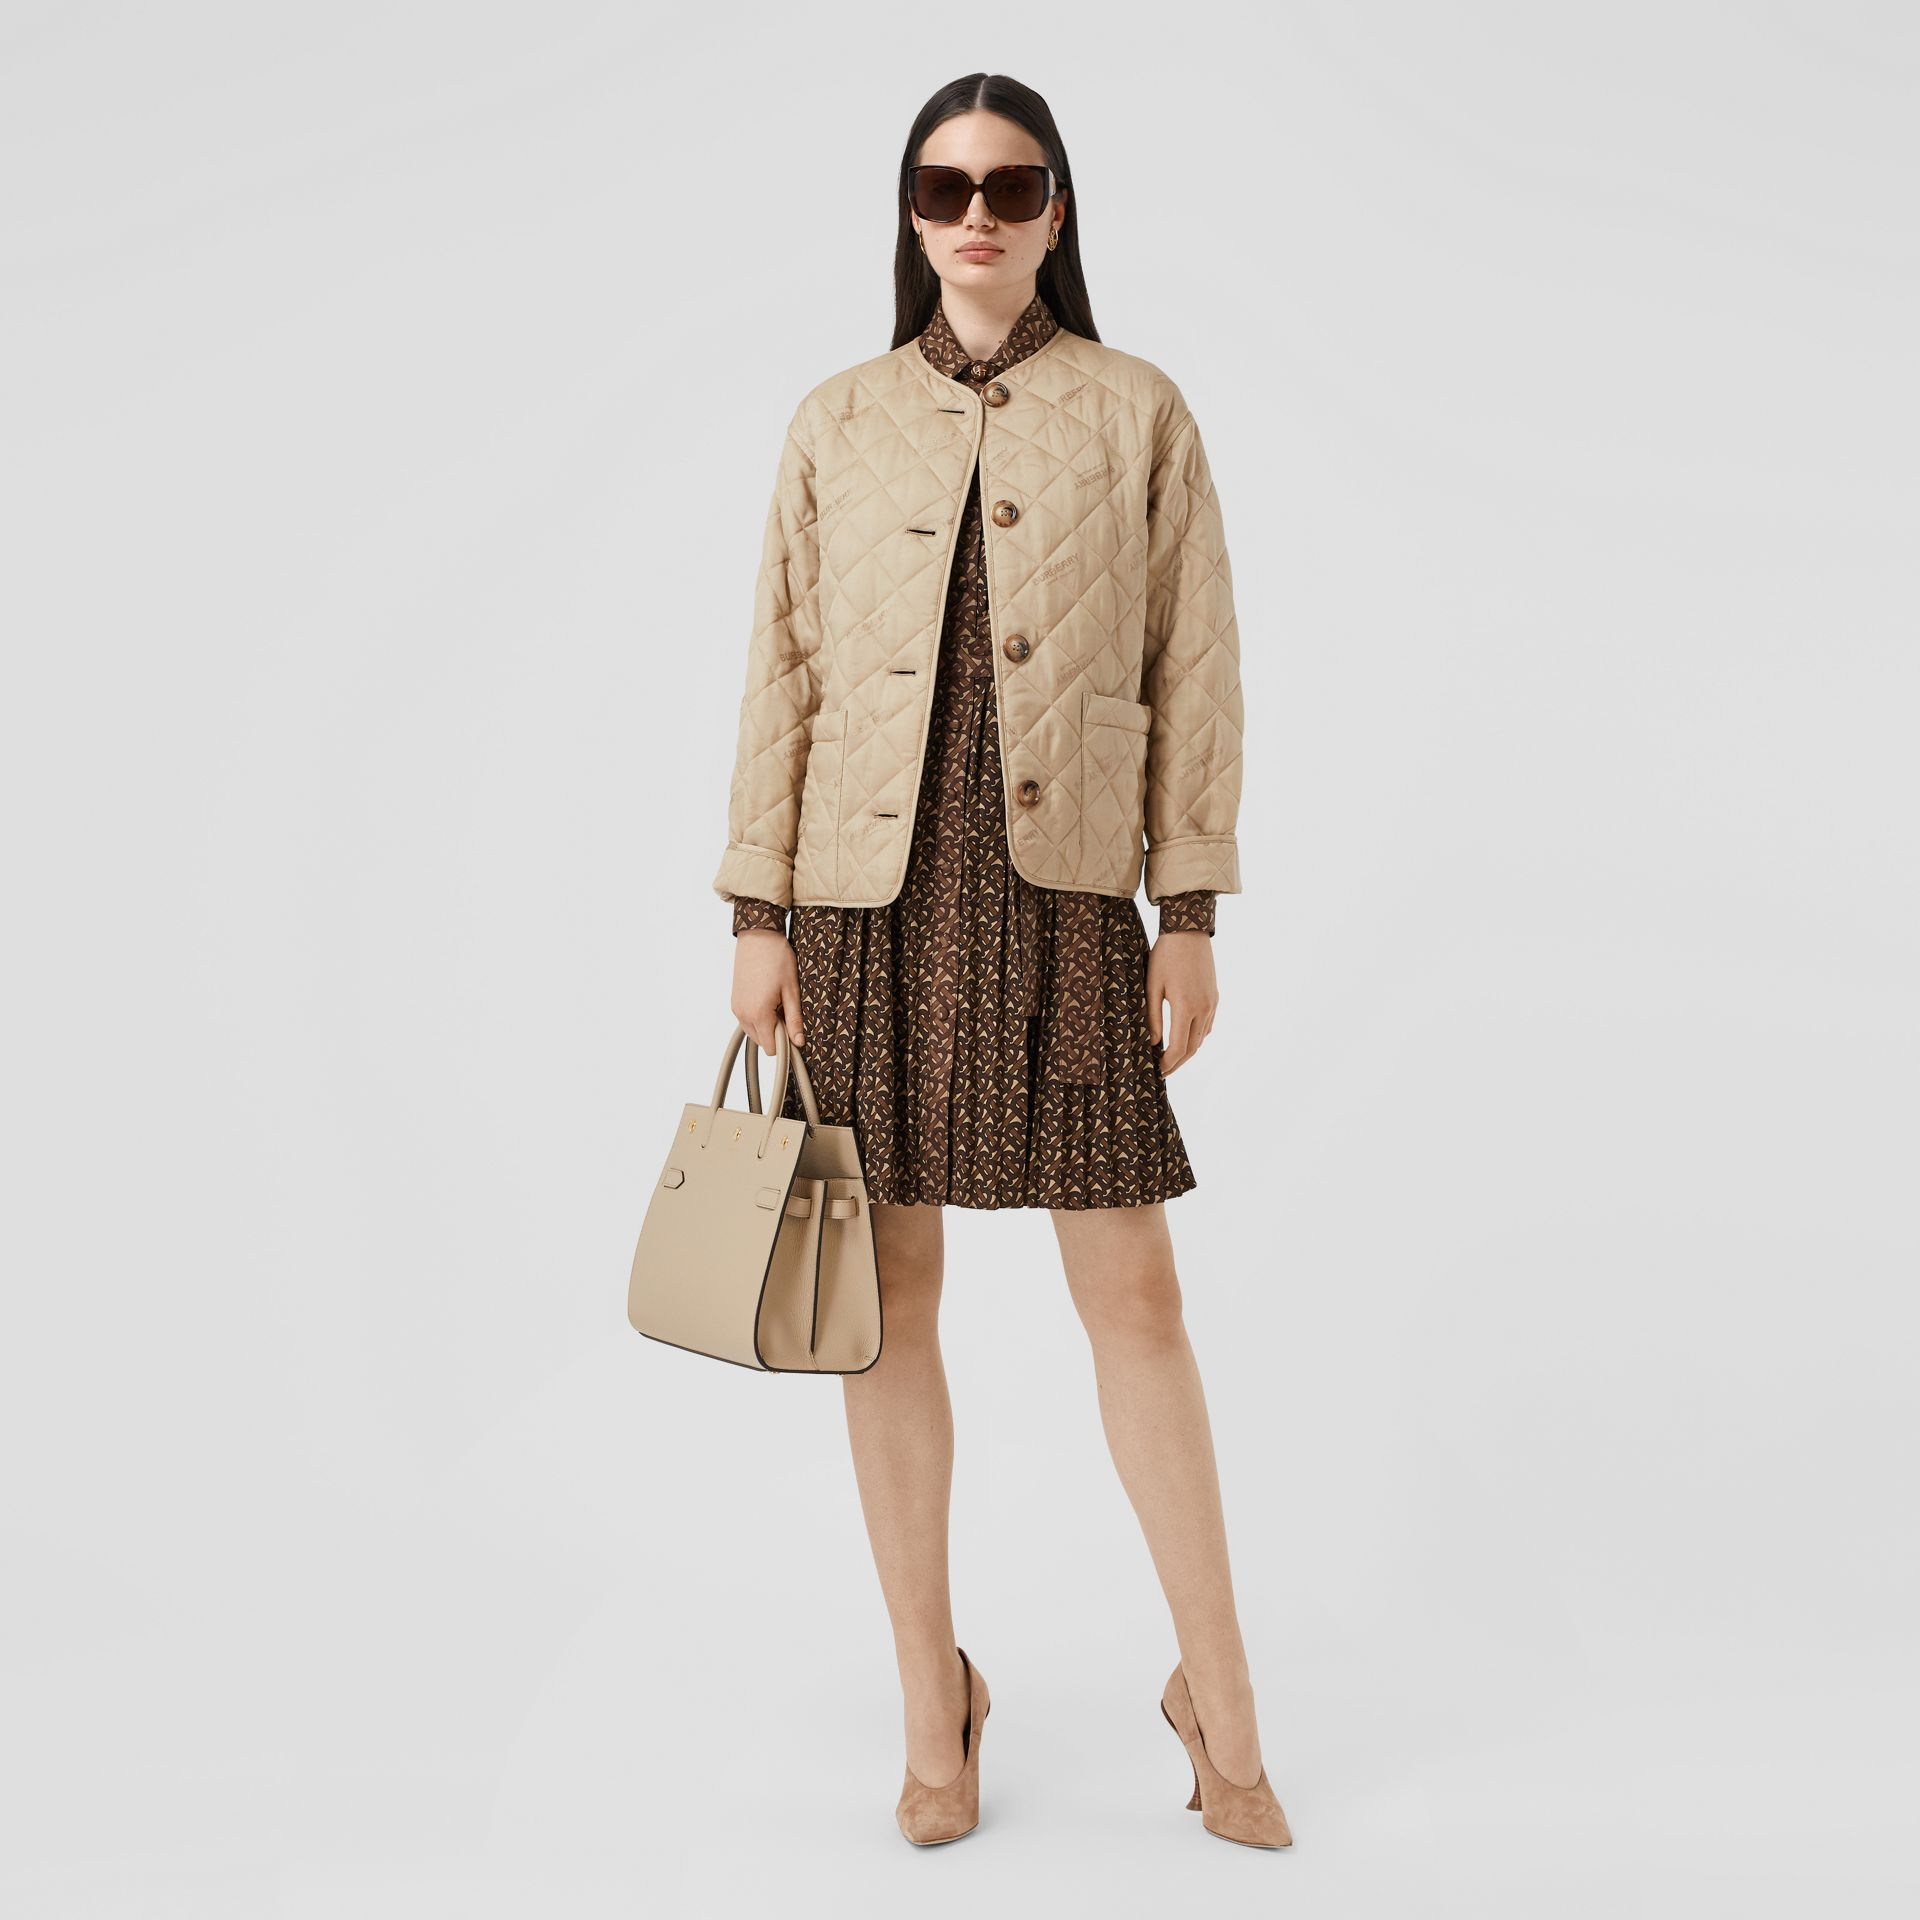 Small Leather Two-handle Title Bag in Light Beige - Women | Burberry - gallery image 5